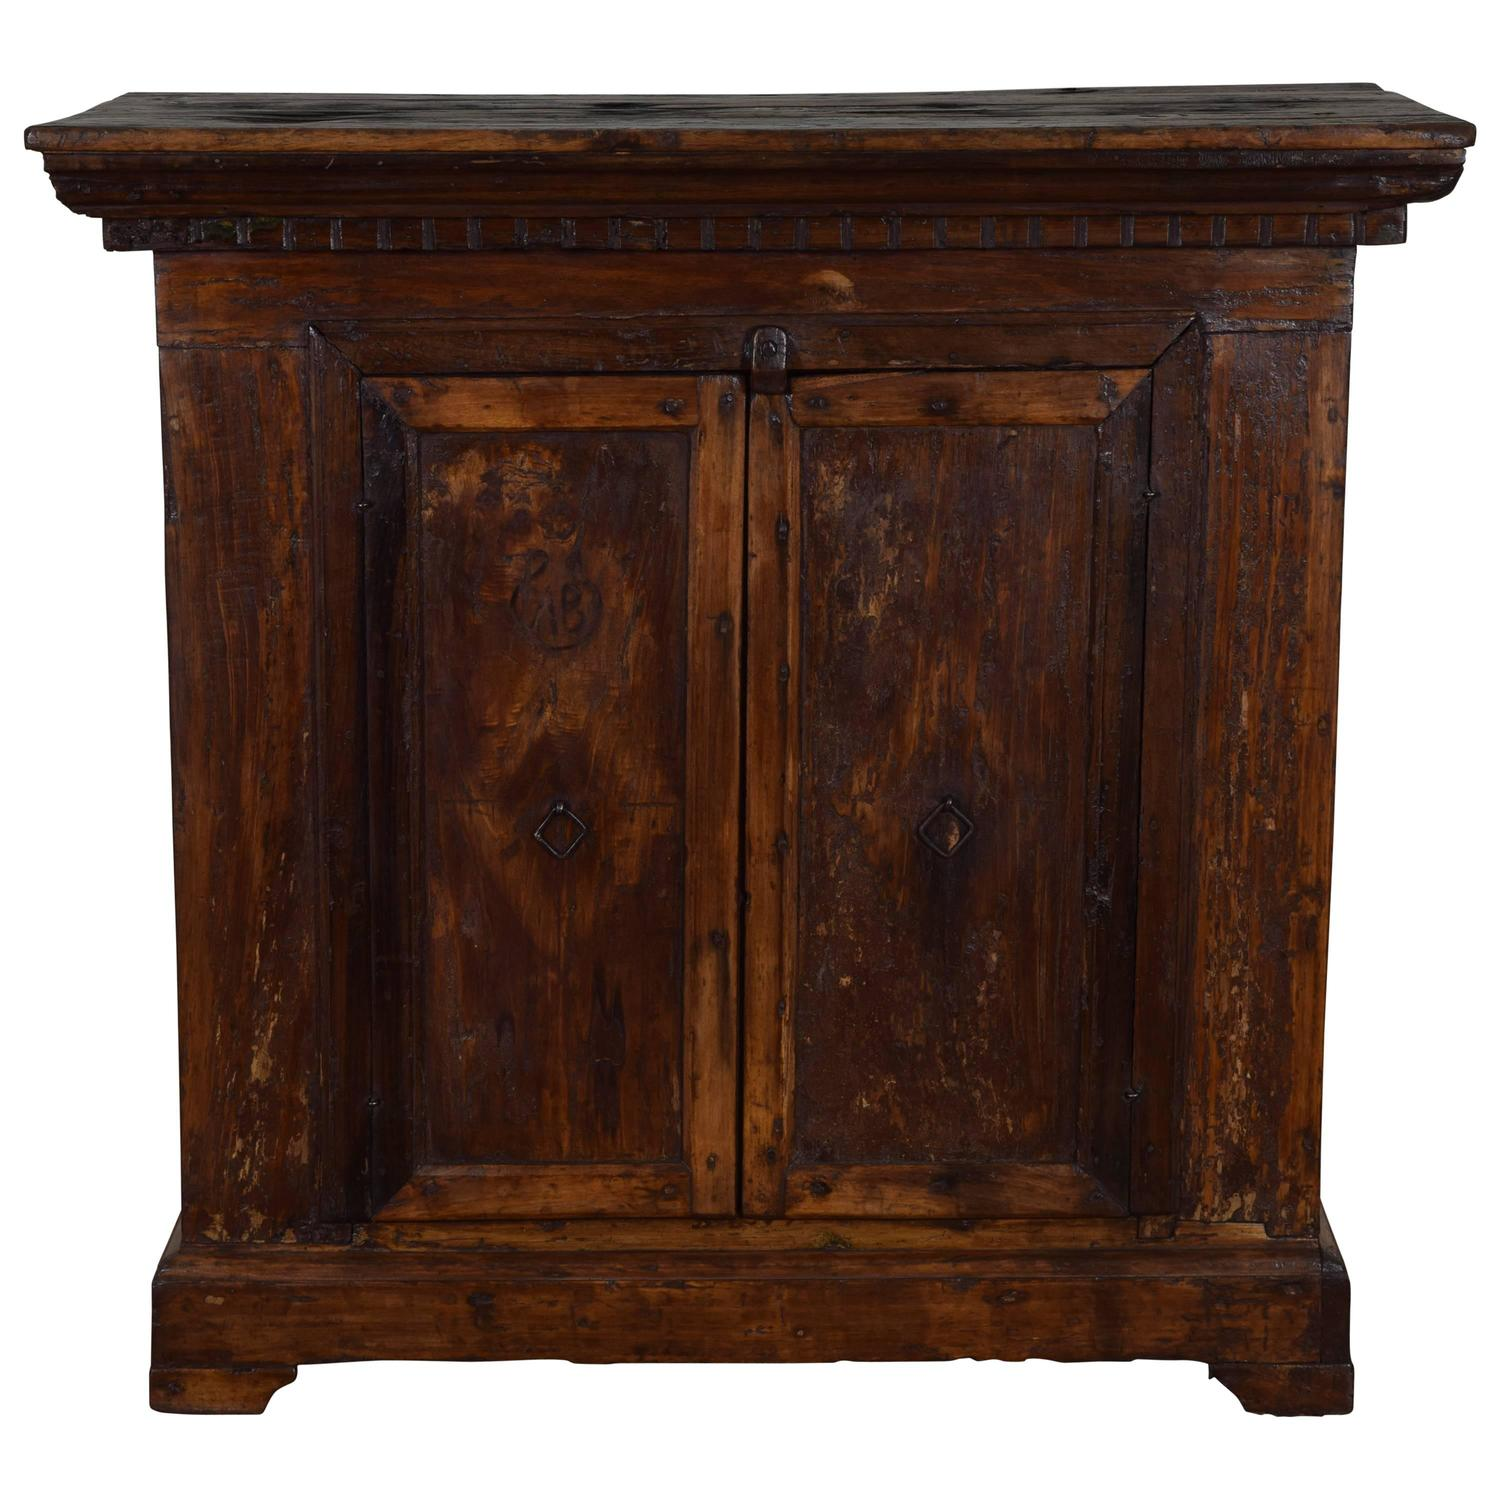 Rustic Italian Baroque Two Door Work Cabinet Credenza